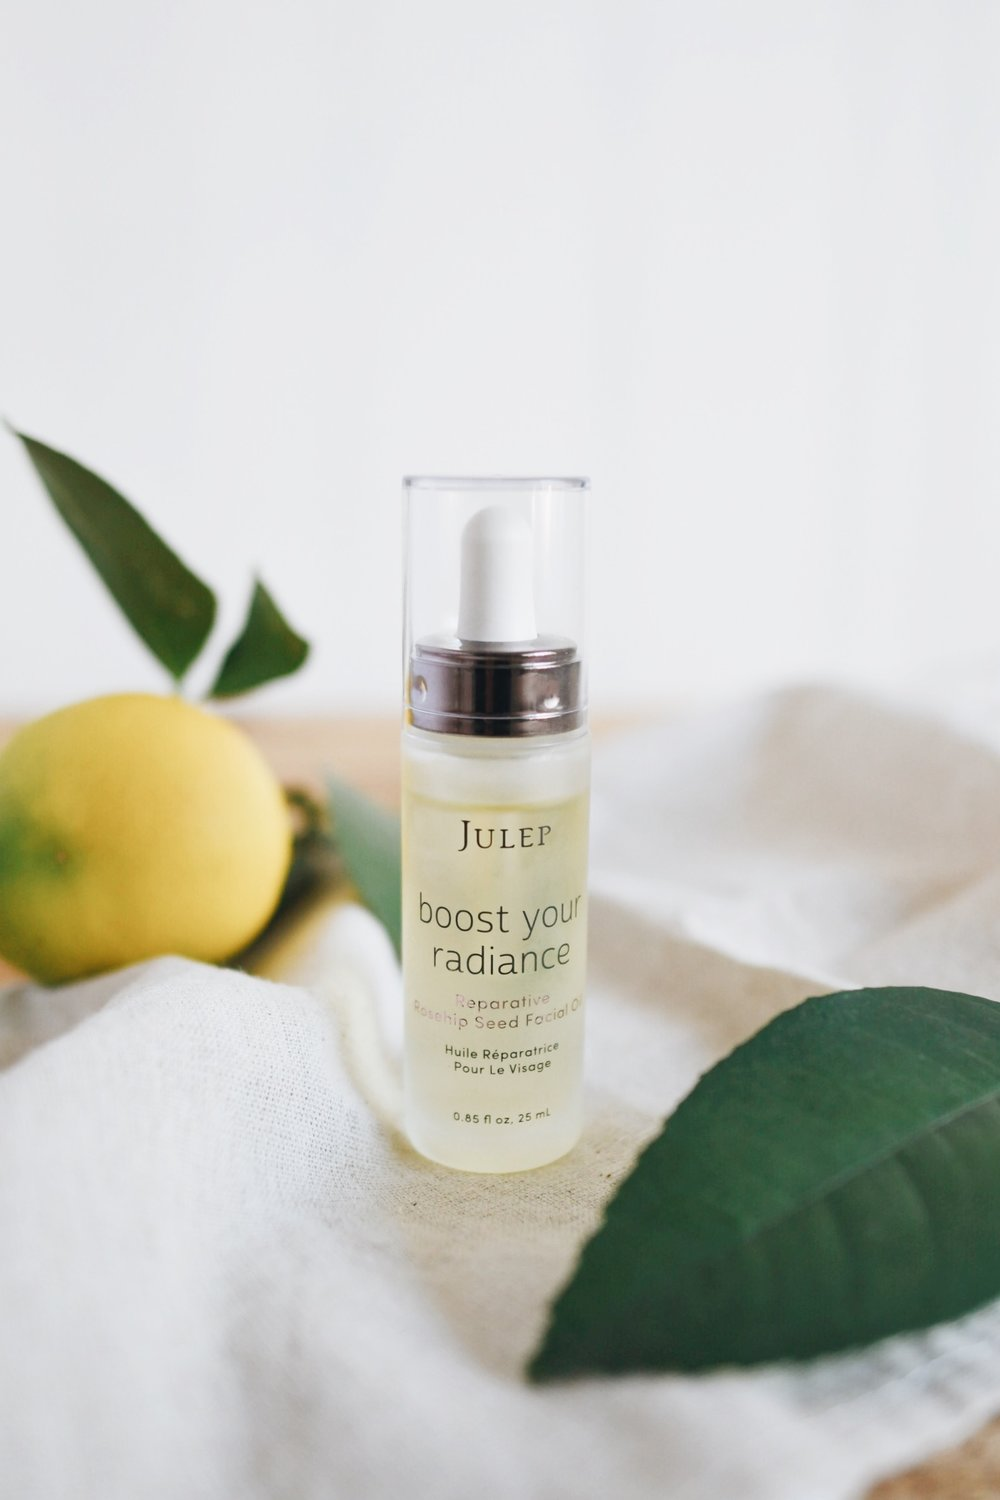 Julep Reparative Rose Hip Facial Oil